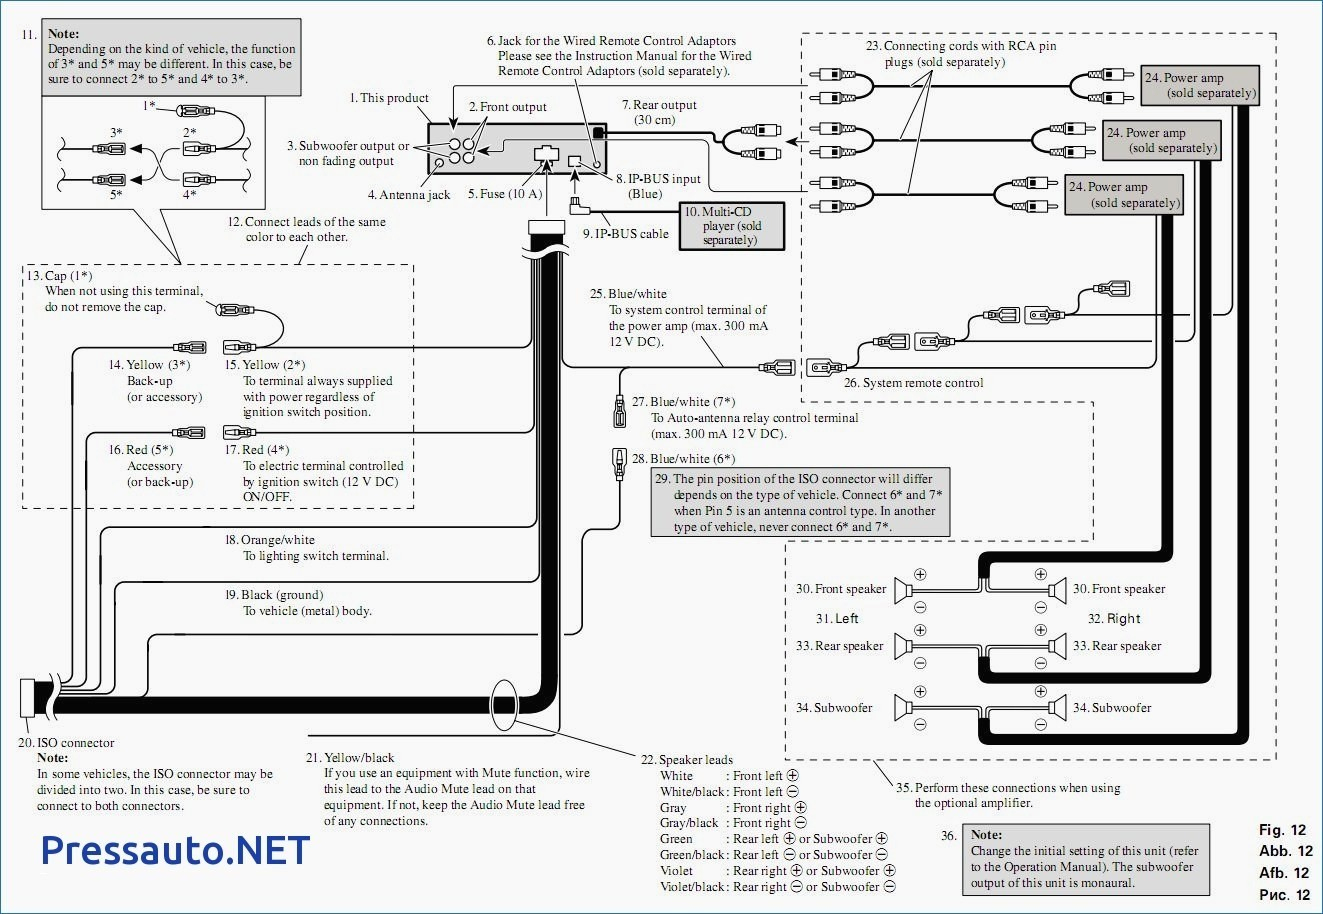 Pioneer Dxt X4869Bt Wiring Diagram | Wiring Diagram - Pioneer Dxt X4869Bt Wiring Diagram